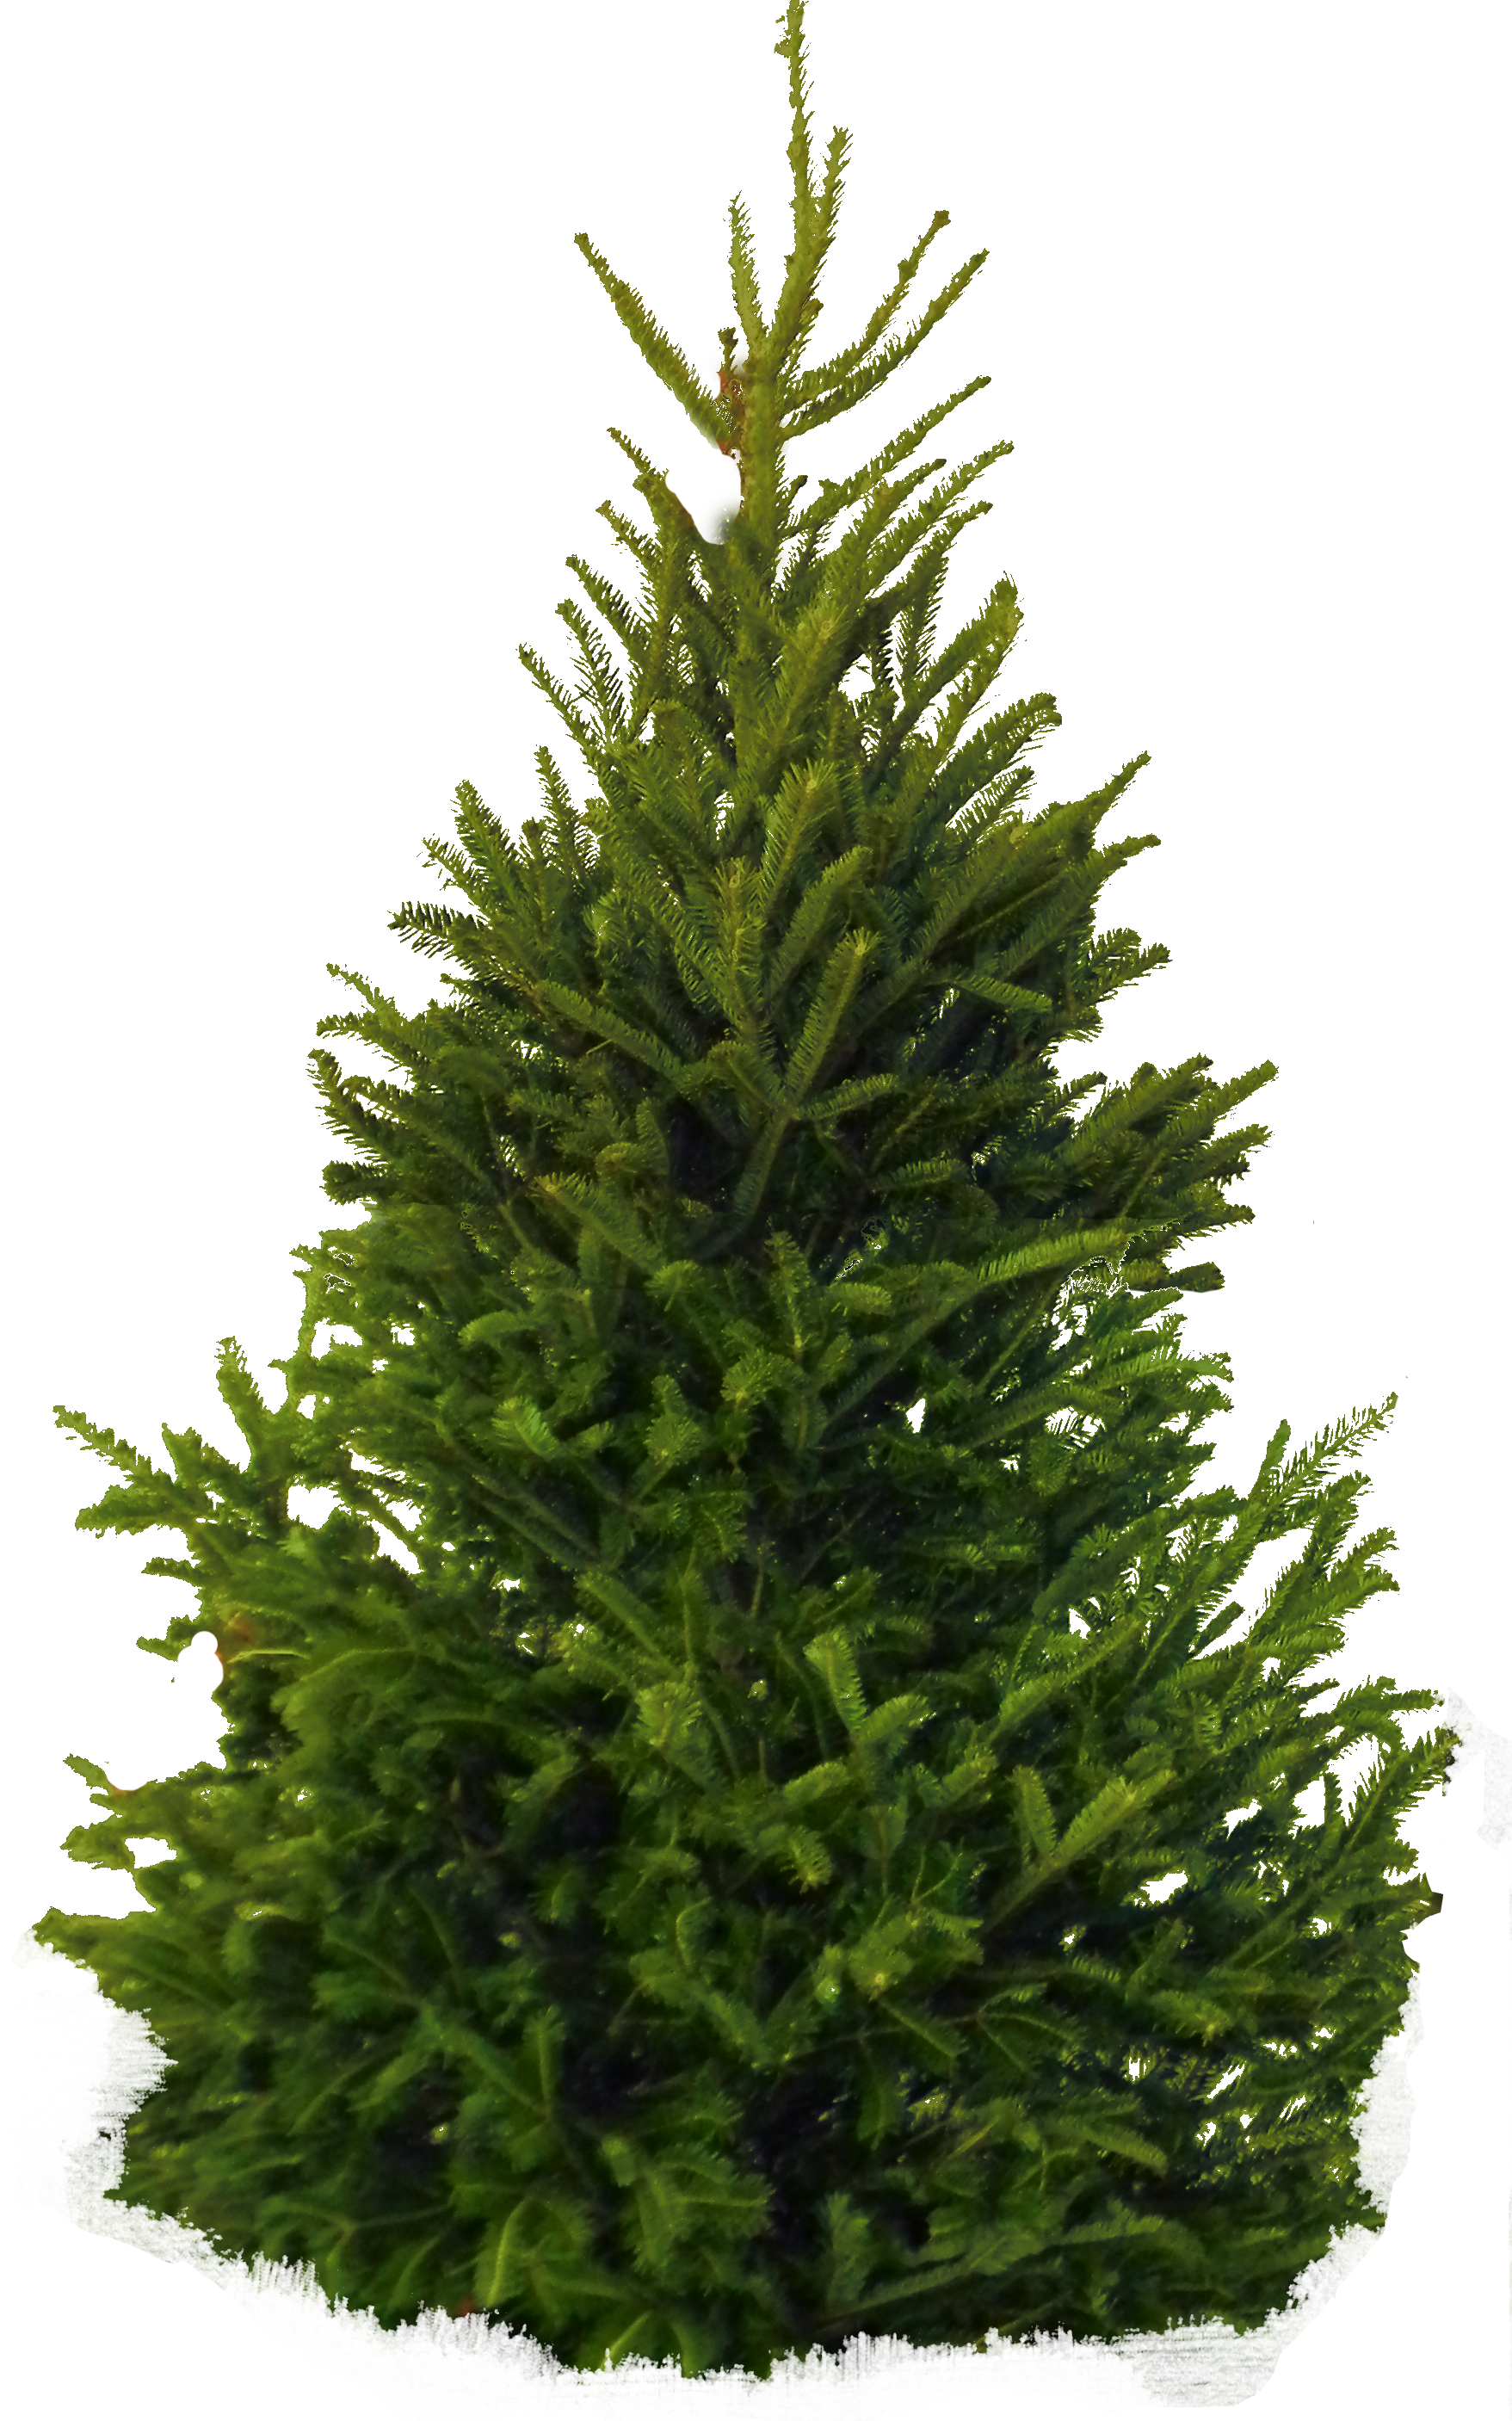 Pine tree texture png. Image trees pinterest drawing